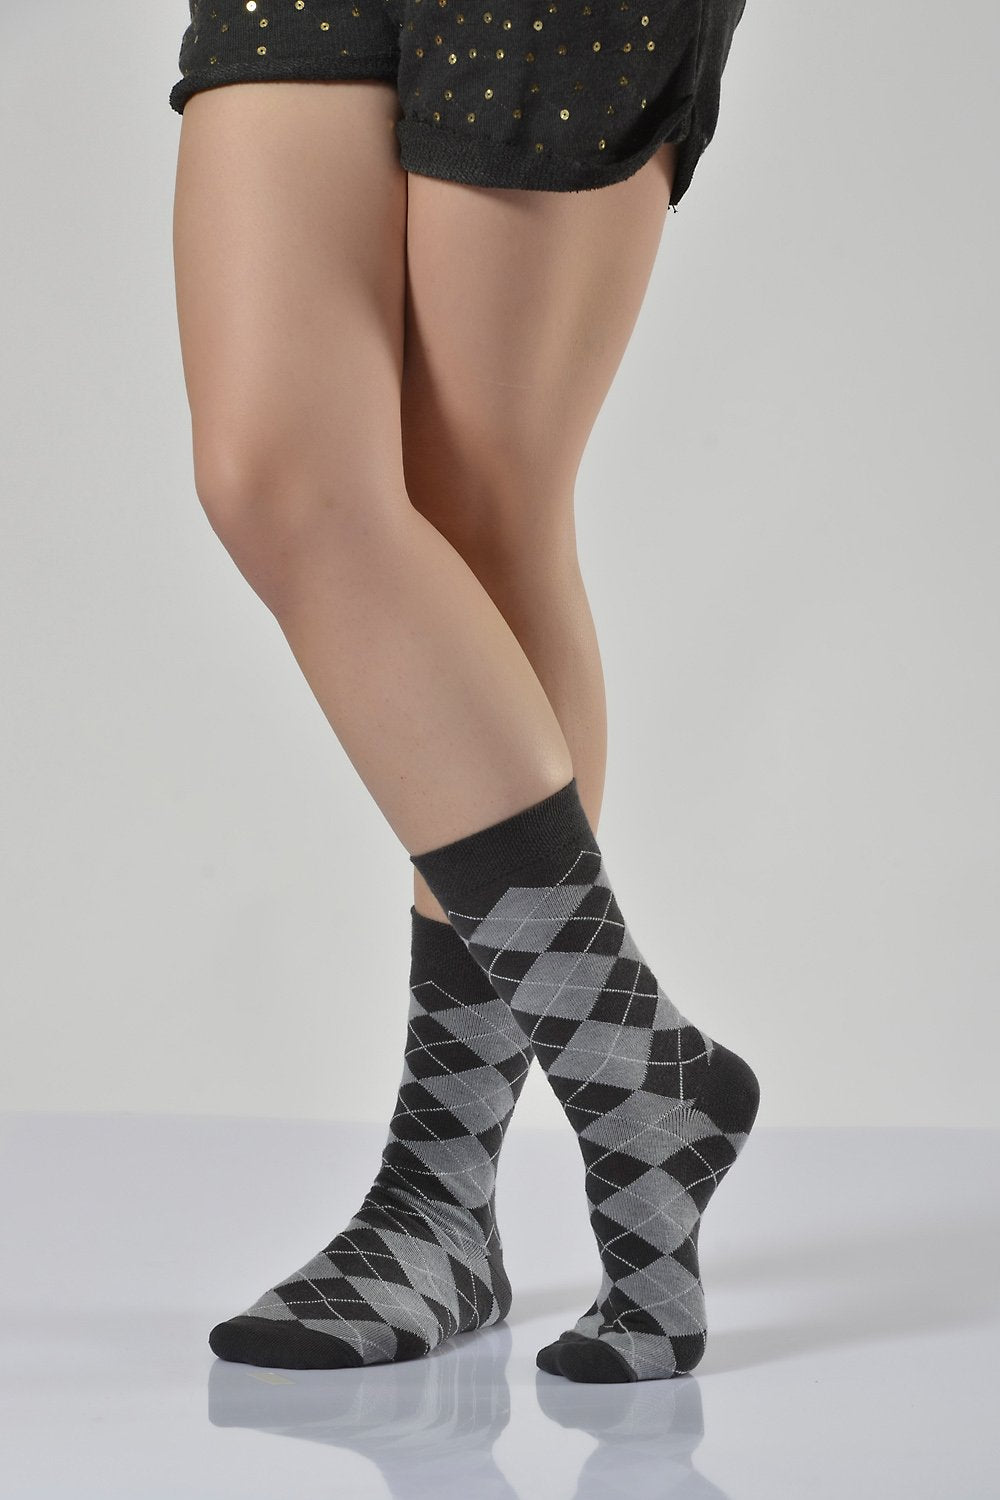 Women's Plaid Pattern Dark Grey Socket Socks- 3 Pairs